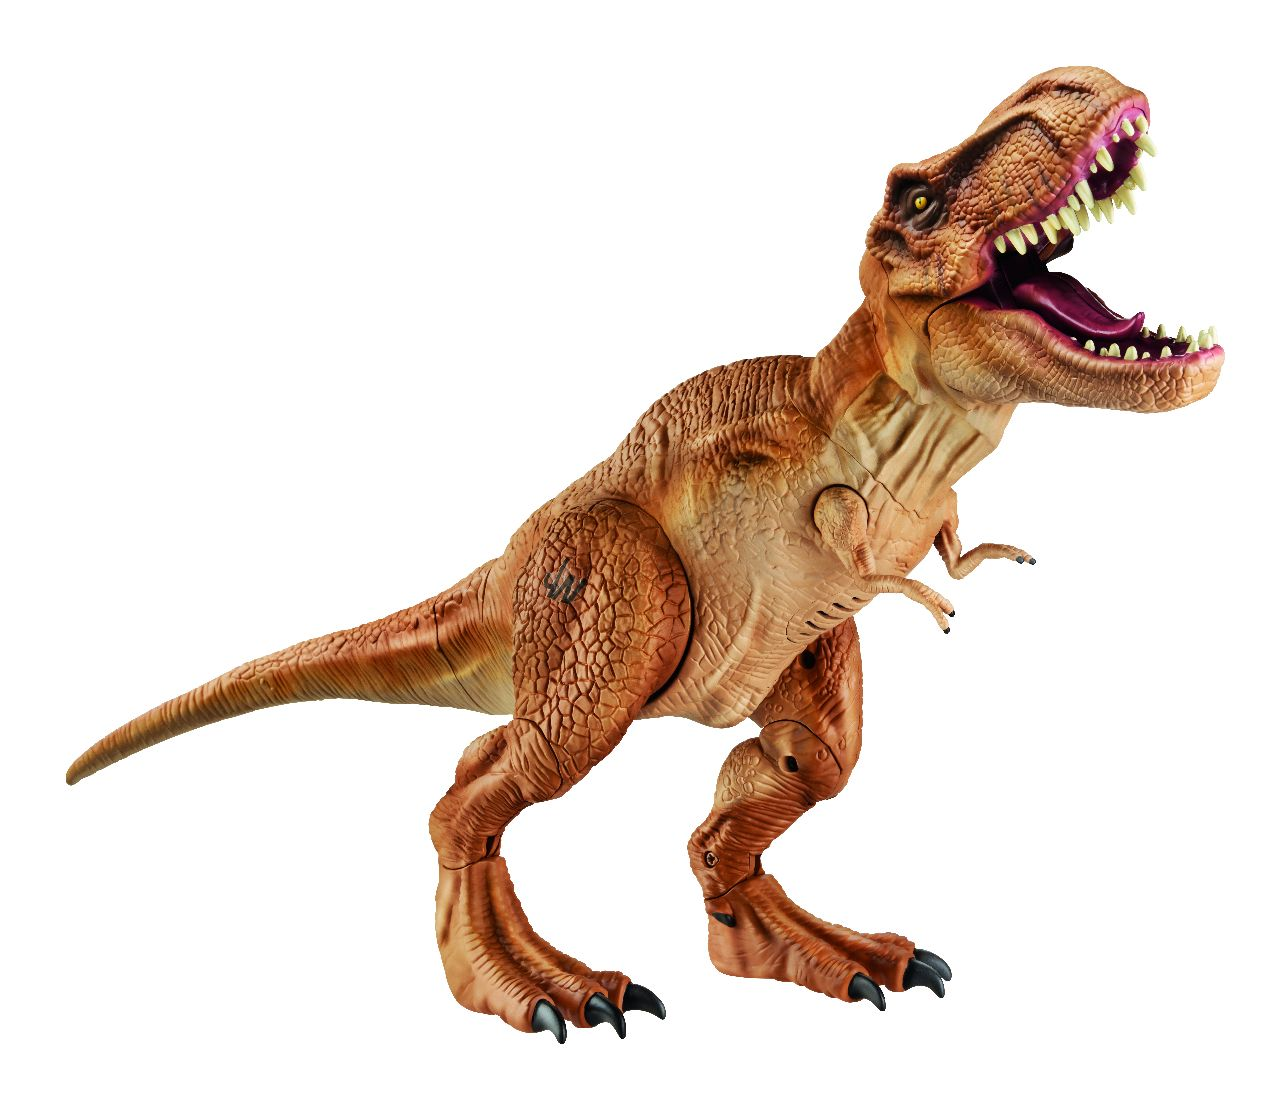 New Jurassic World Toys See The Indominus Rex And More